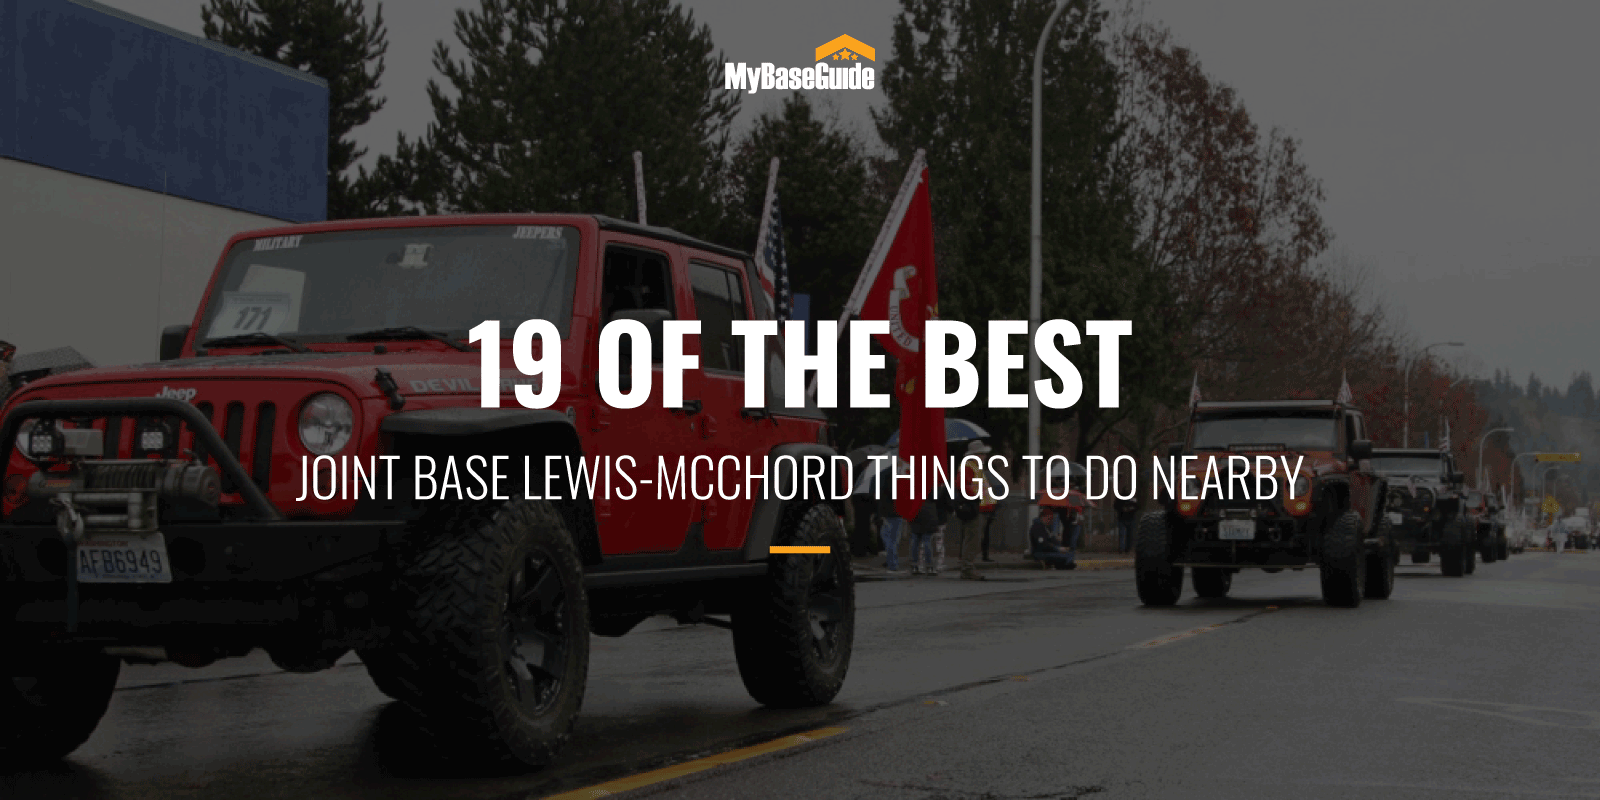 best Things to DO JB Lewis McChord